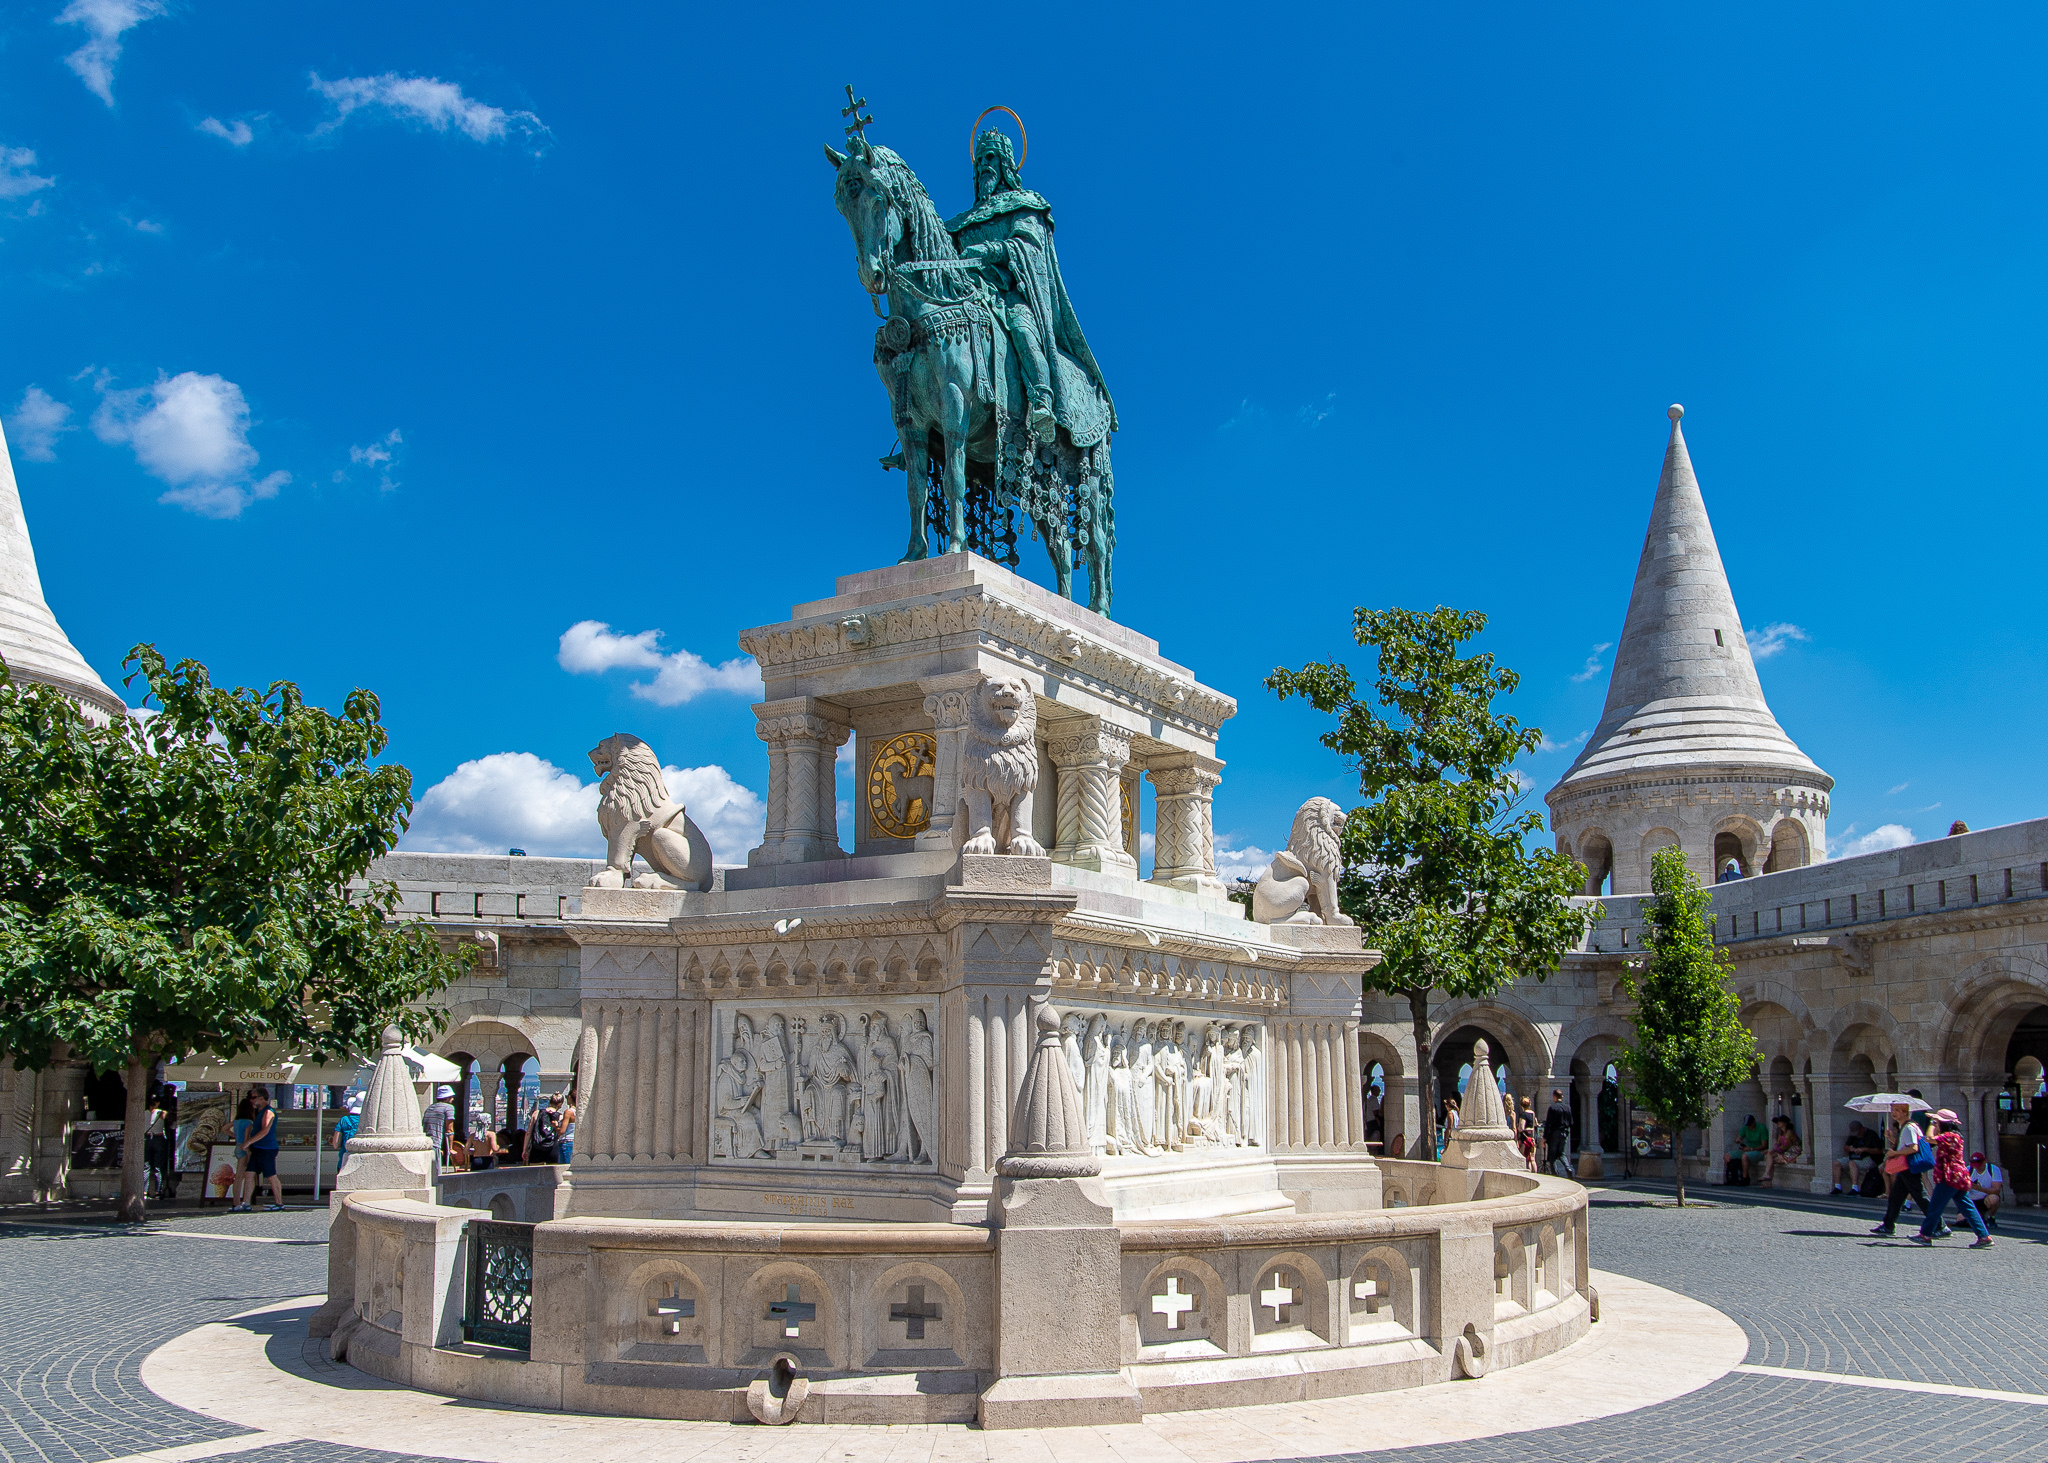 St Stephen's Statue in front of the Fisherman's Bastion